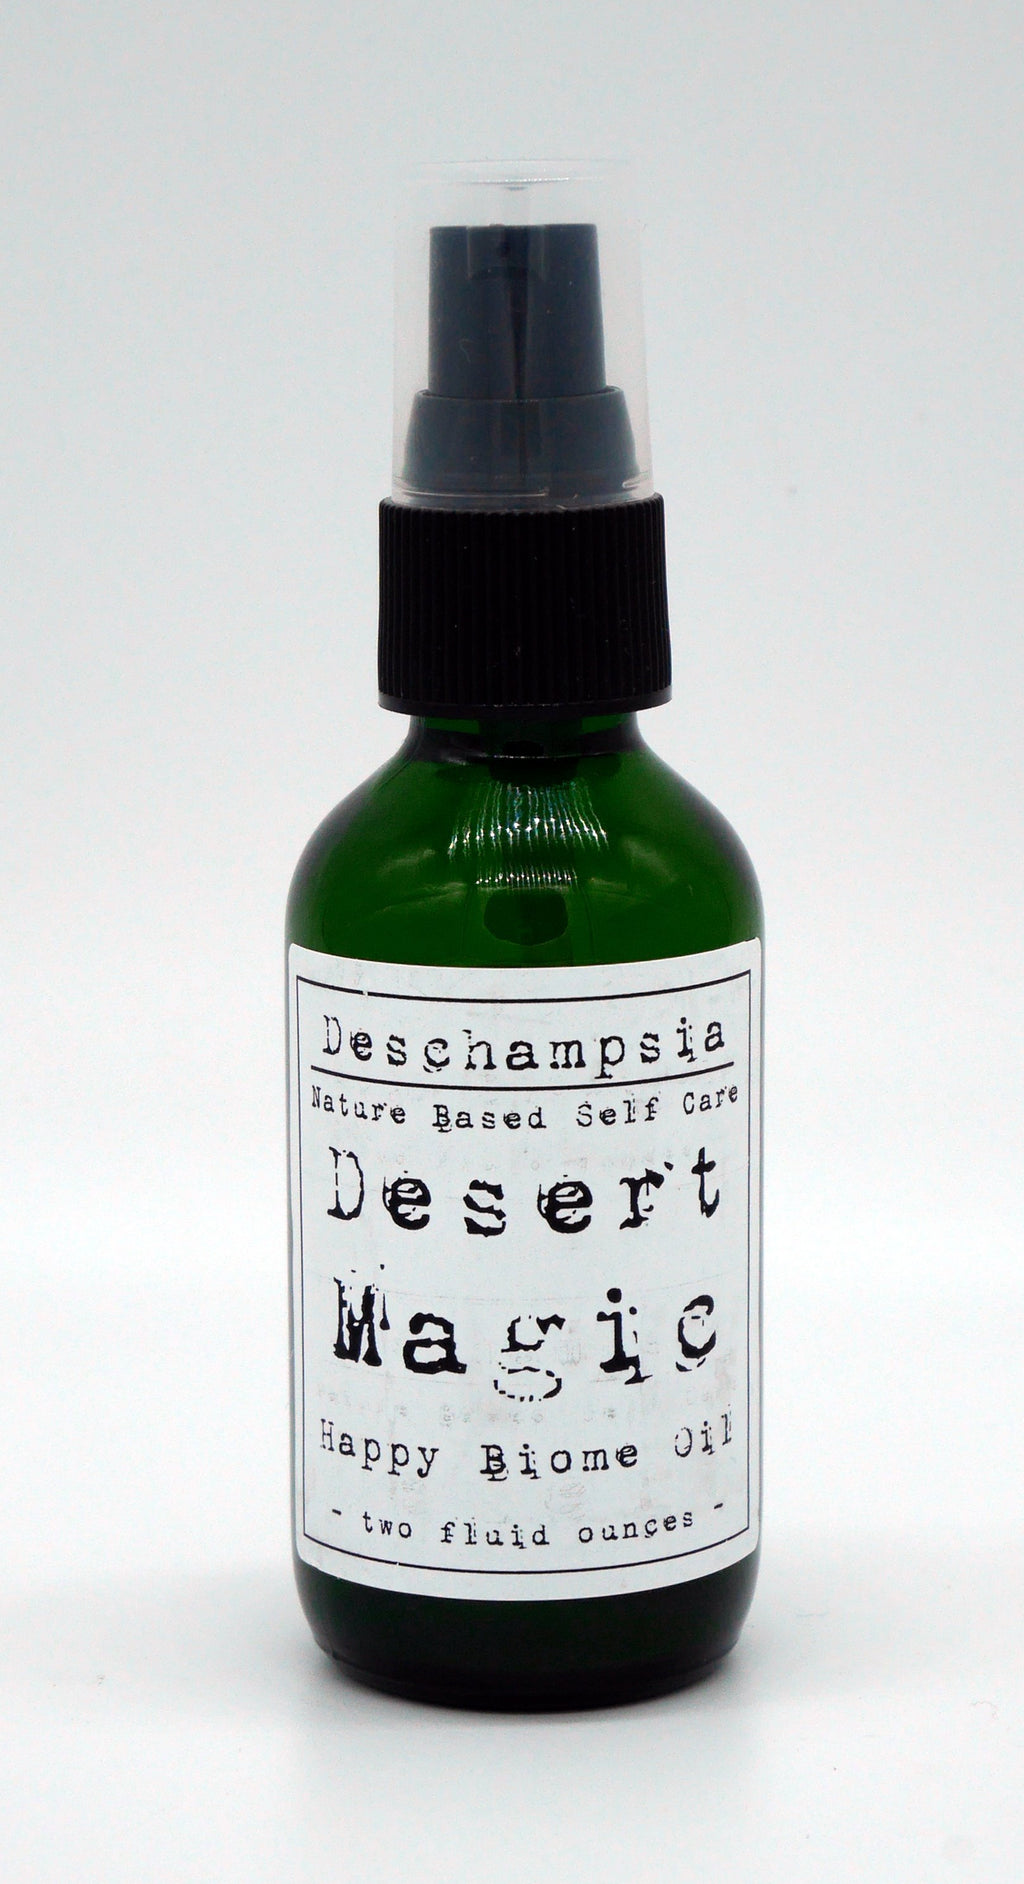 Desert Magic Body Oil *Almost Gone! - Deschampsia - Nature Based Self Care